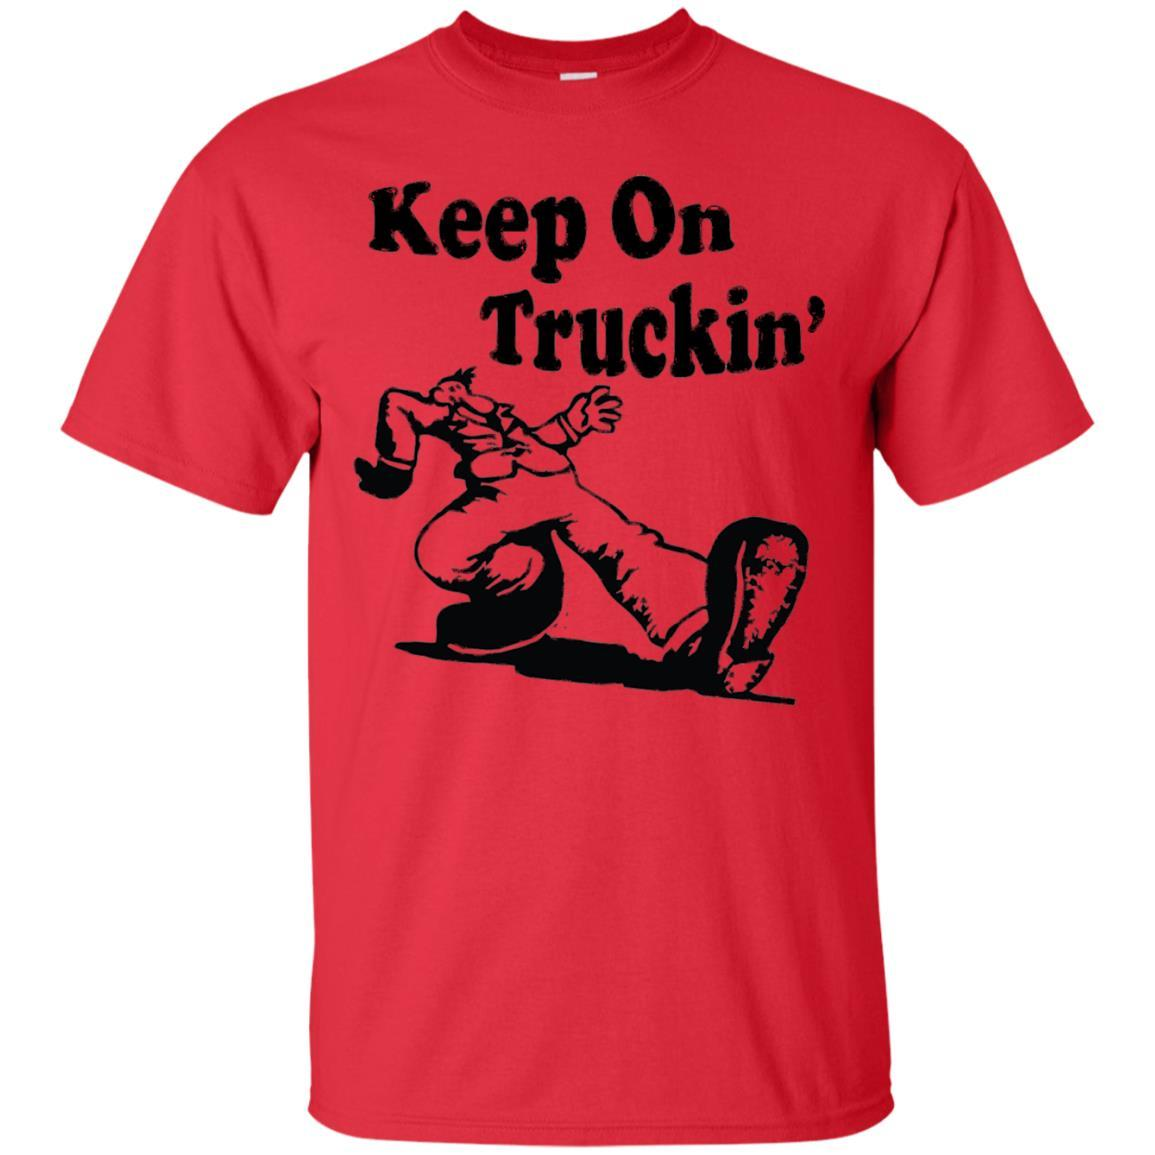 Iconic Keep On Truckin' Tshirt Red / 5XL